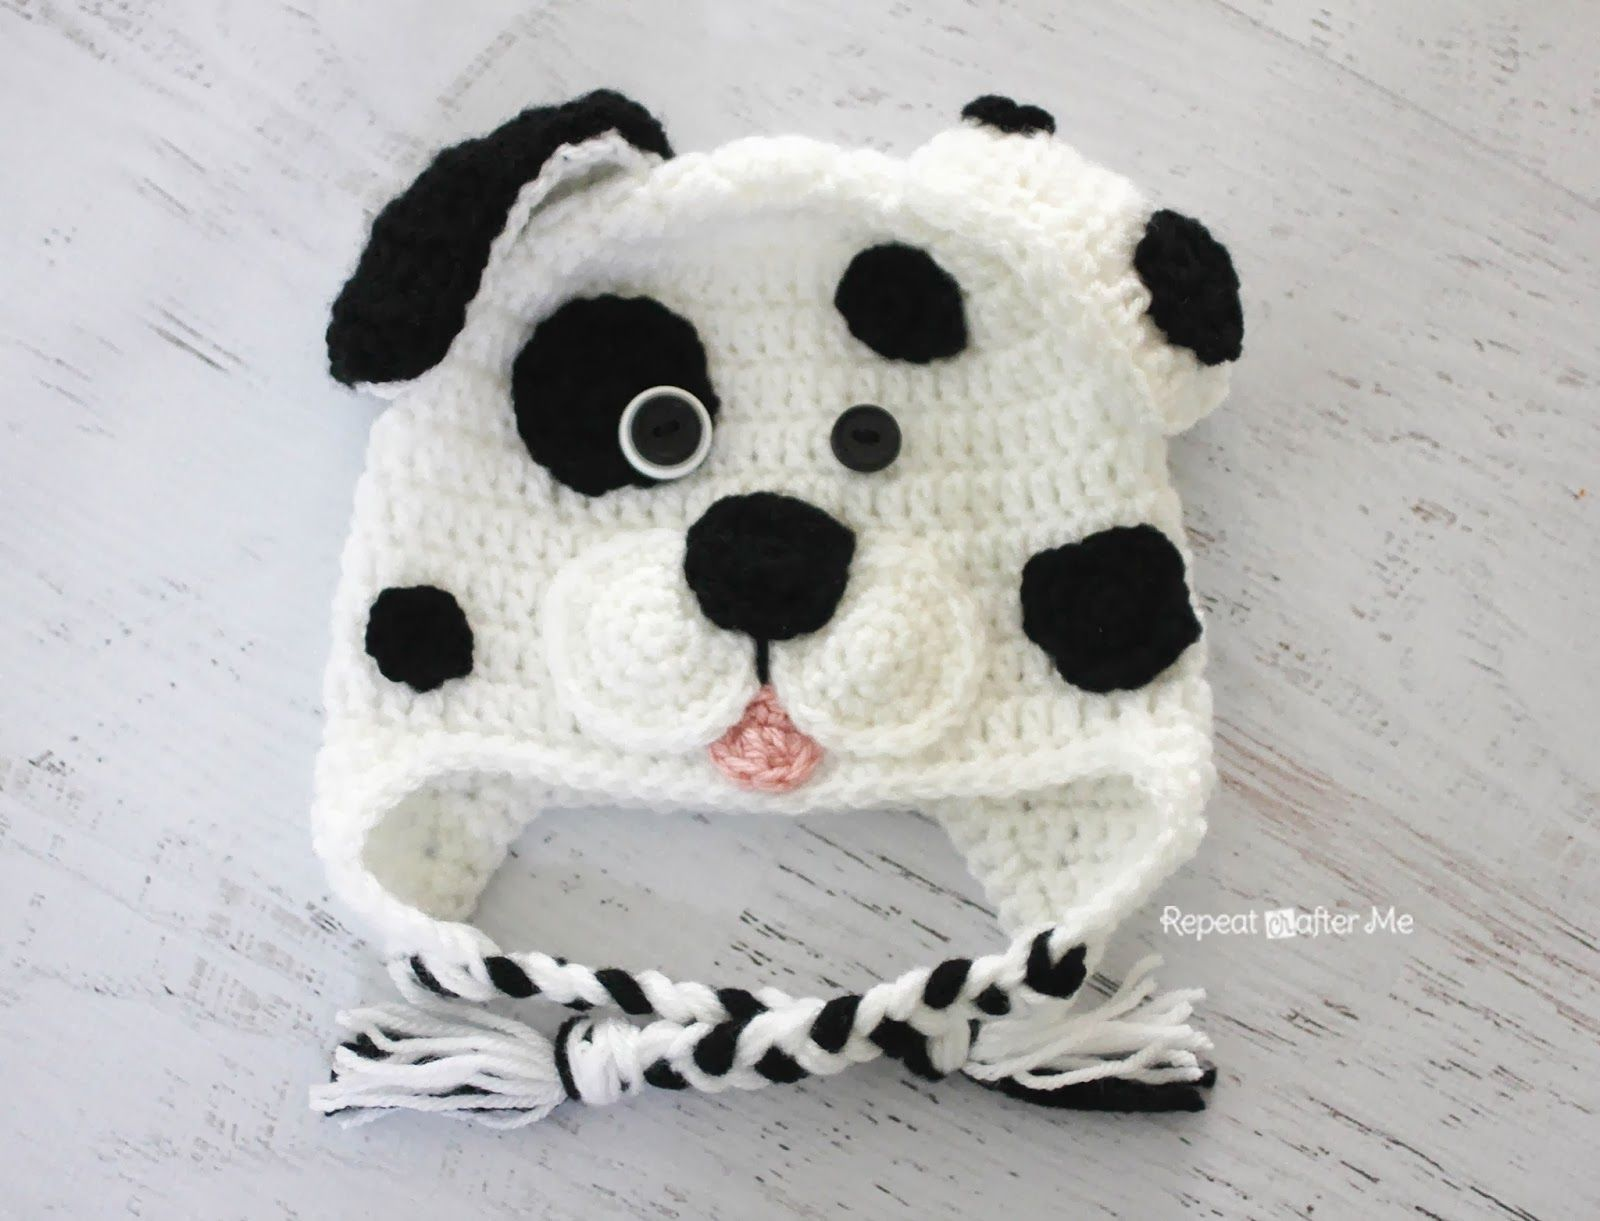 Crochet Dalmatian Dog Pattern (Repeat Crafter Me) | Gorros, Caras y ...